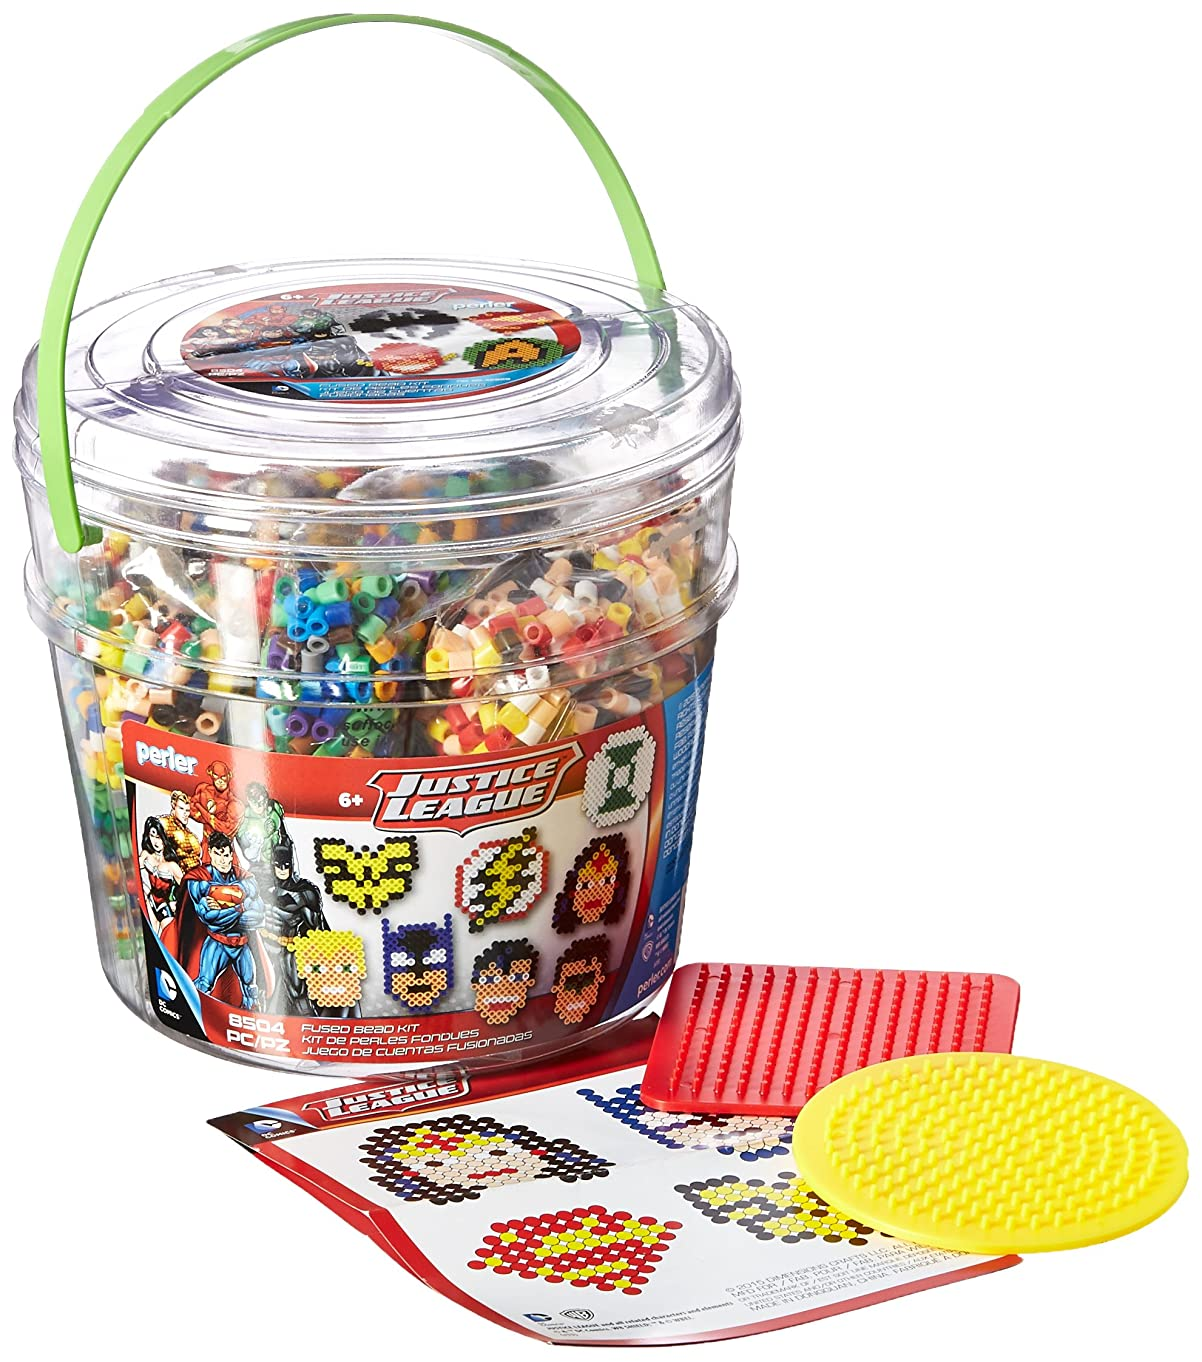 Perler Beads Justice League Fuse Bead Bucket Craft Activity Kit, 8504 pcs